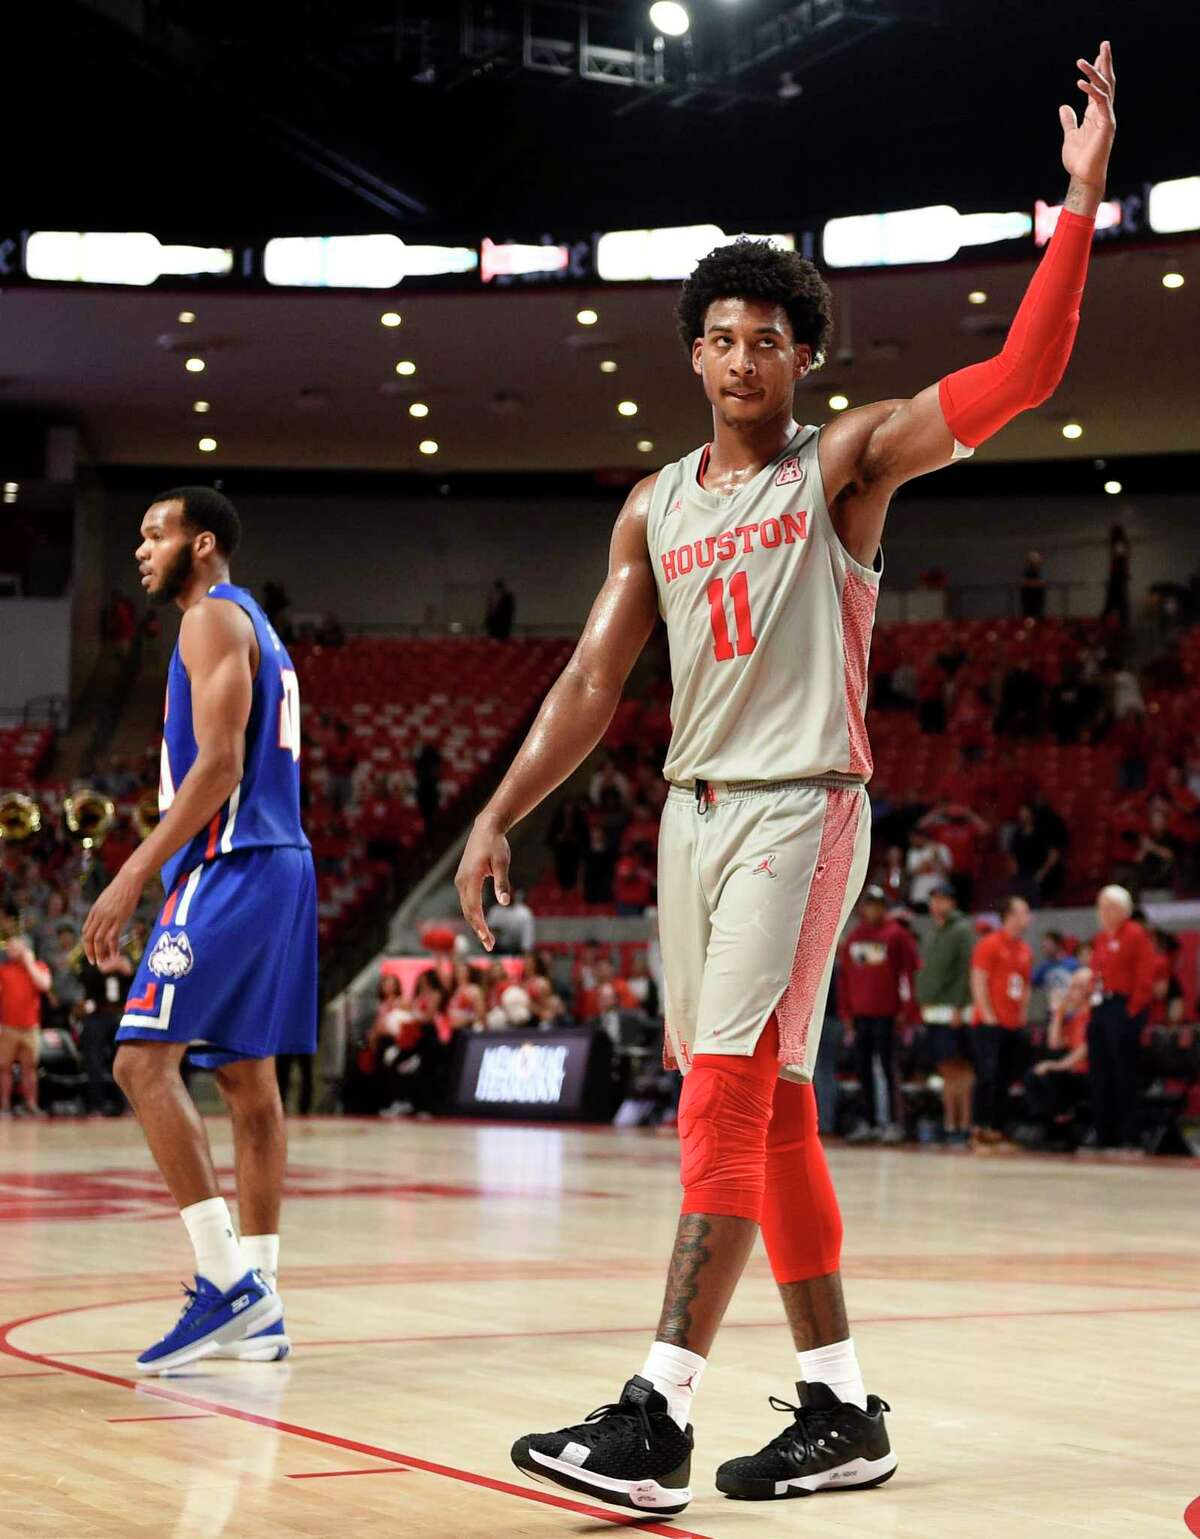 Houston guard Nate Hinton (11) acknowledges the crowd after the team's win over Houston Baptist in an NCAA college basketball game, Tuesday, Nov. 26, 2019, in Houston.